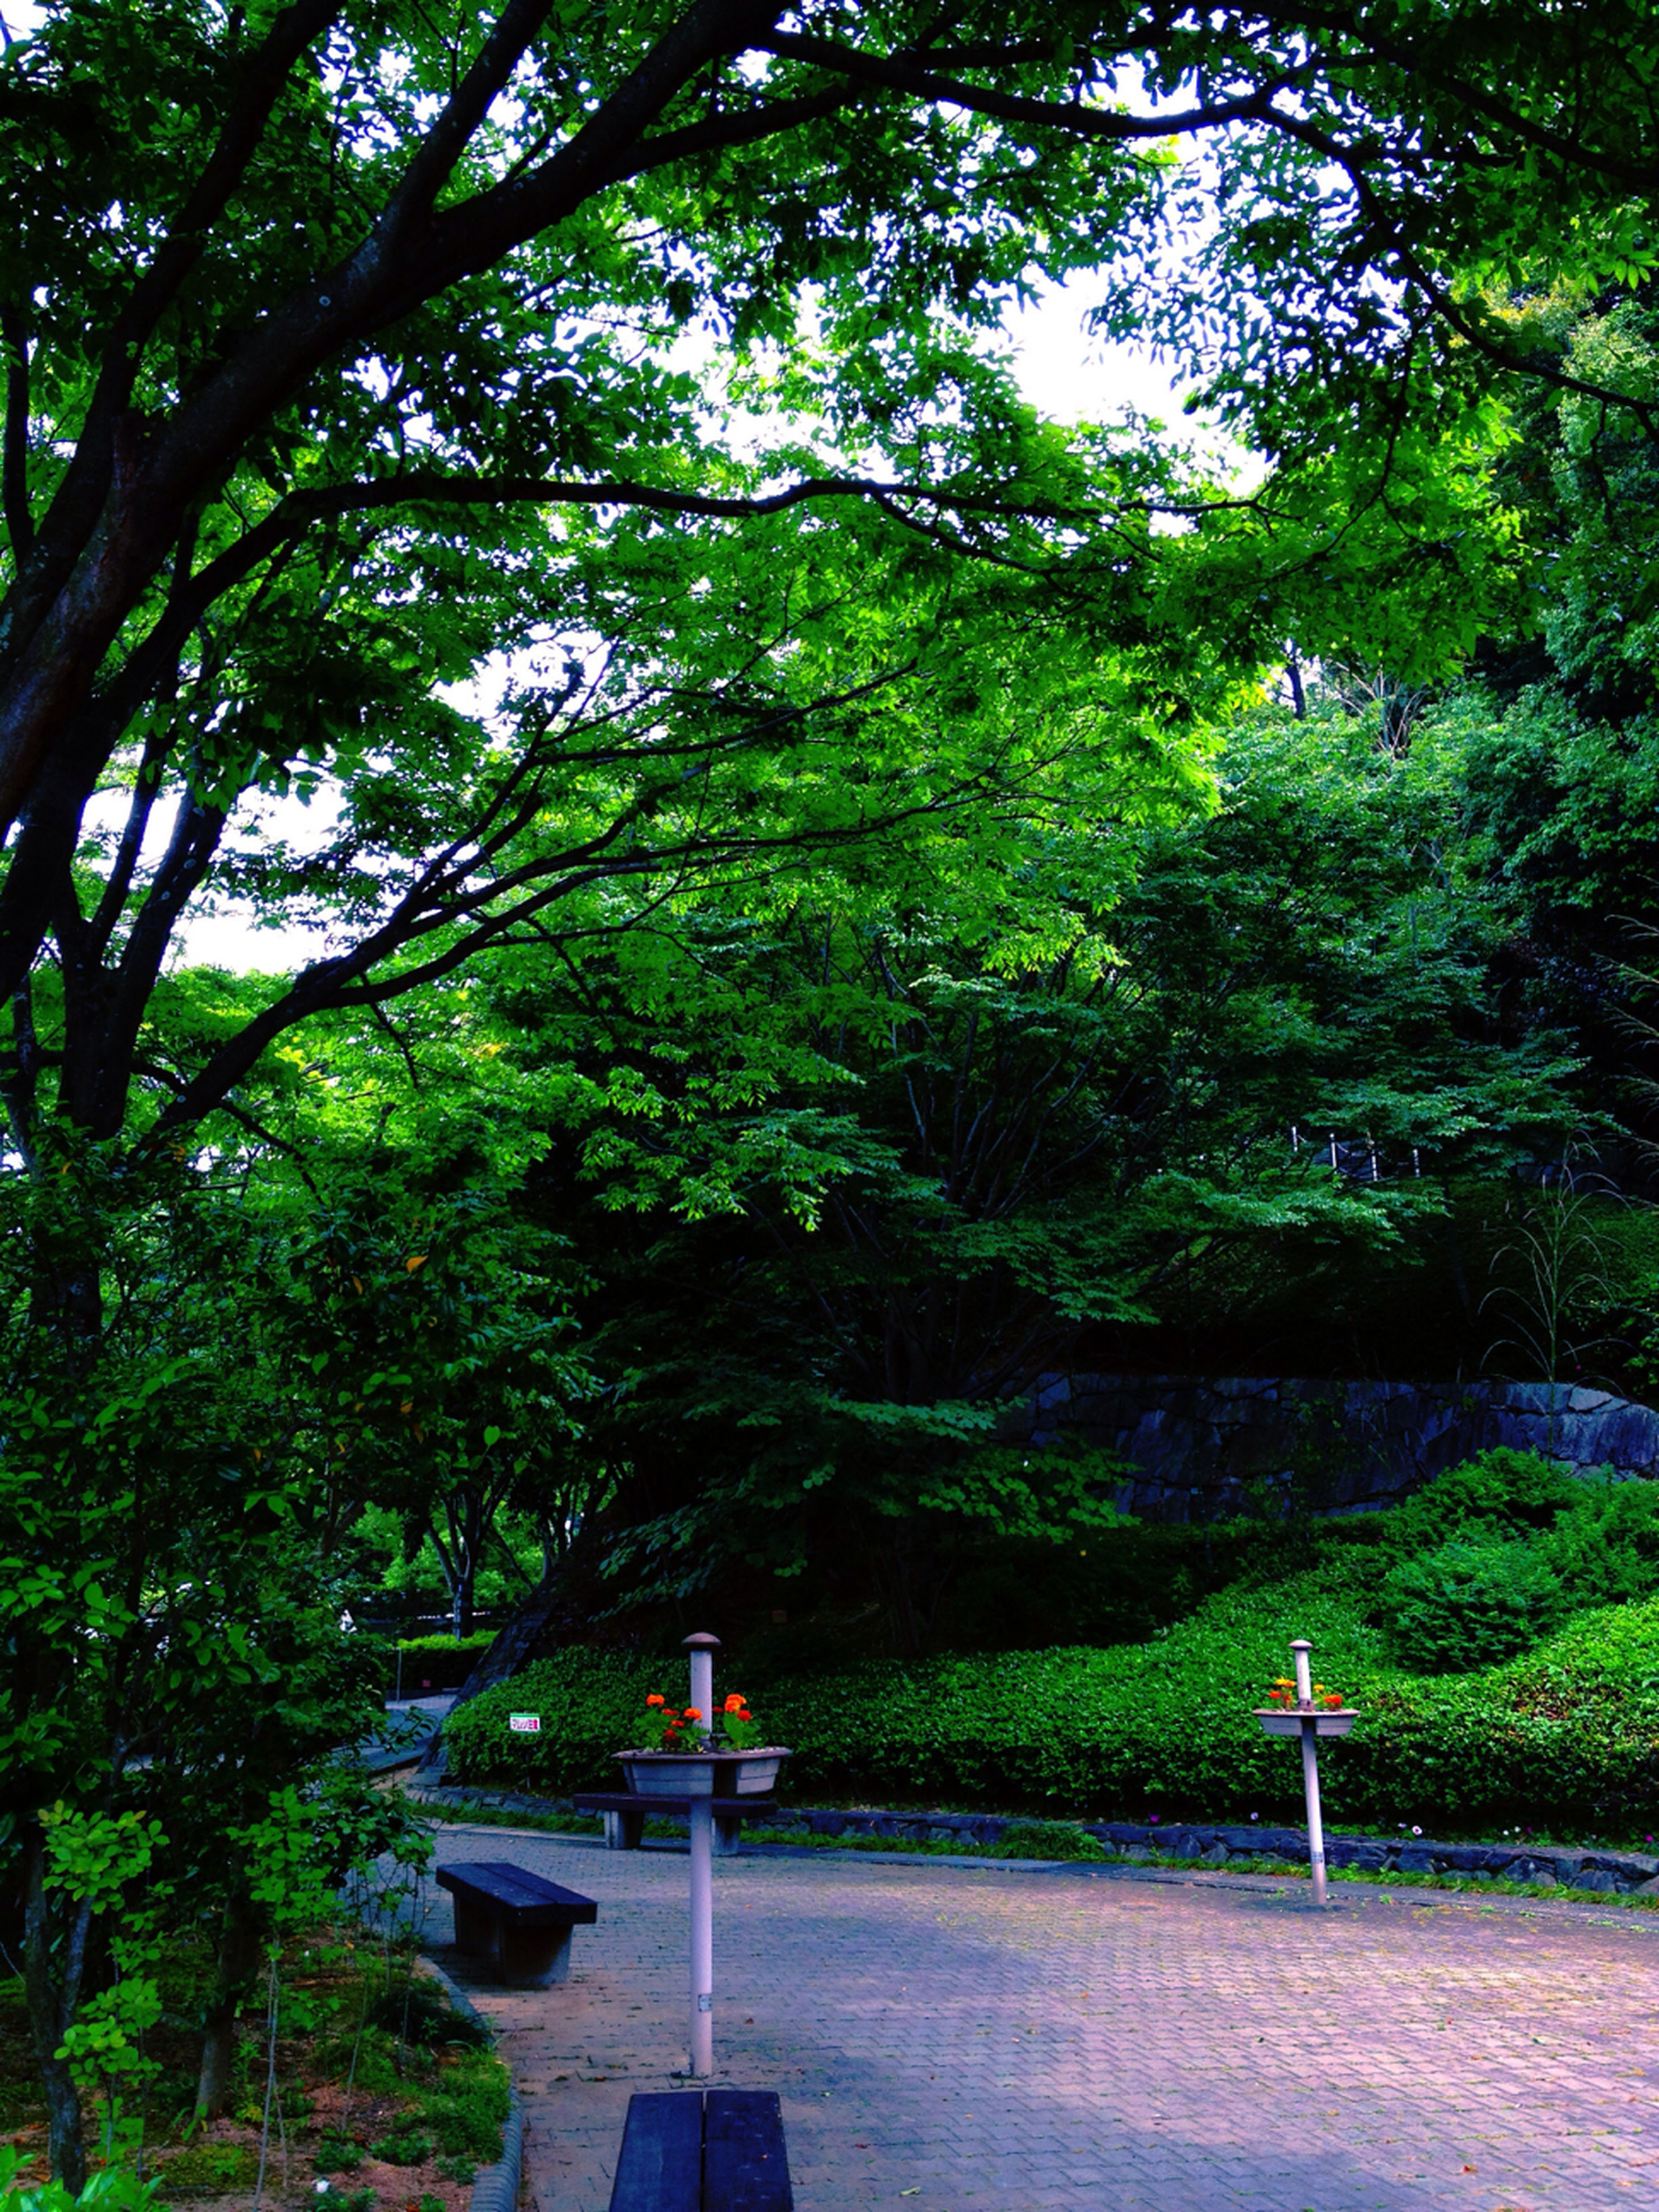 tree, growth, green color, tranquility, transportation, lush foliage, nature, park - man made space, branch, forest, the way forward, street light, tranquil scene, beauty in nature, road, day, scenics, outdoors, lighting equipment, green